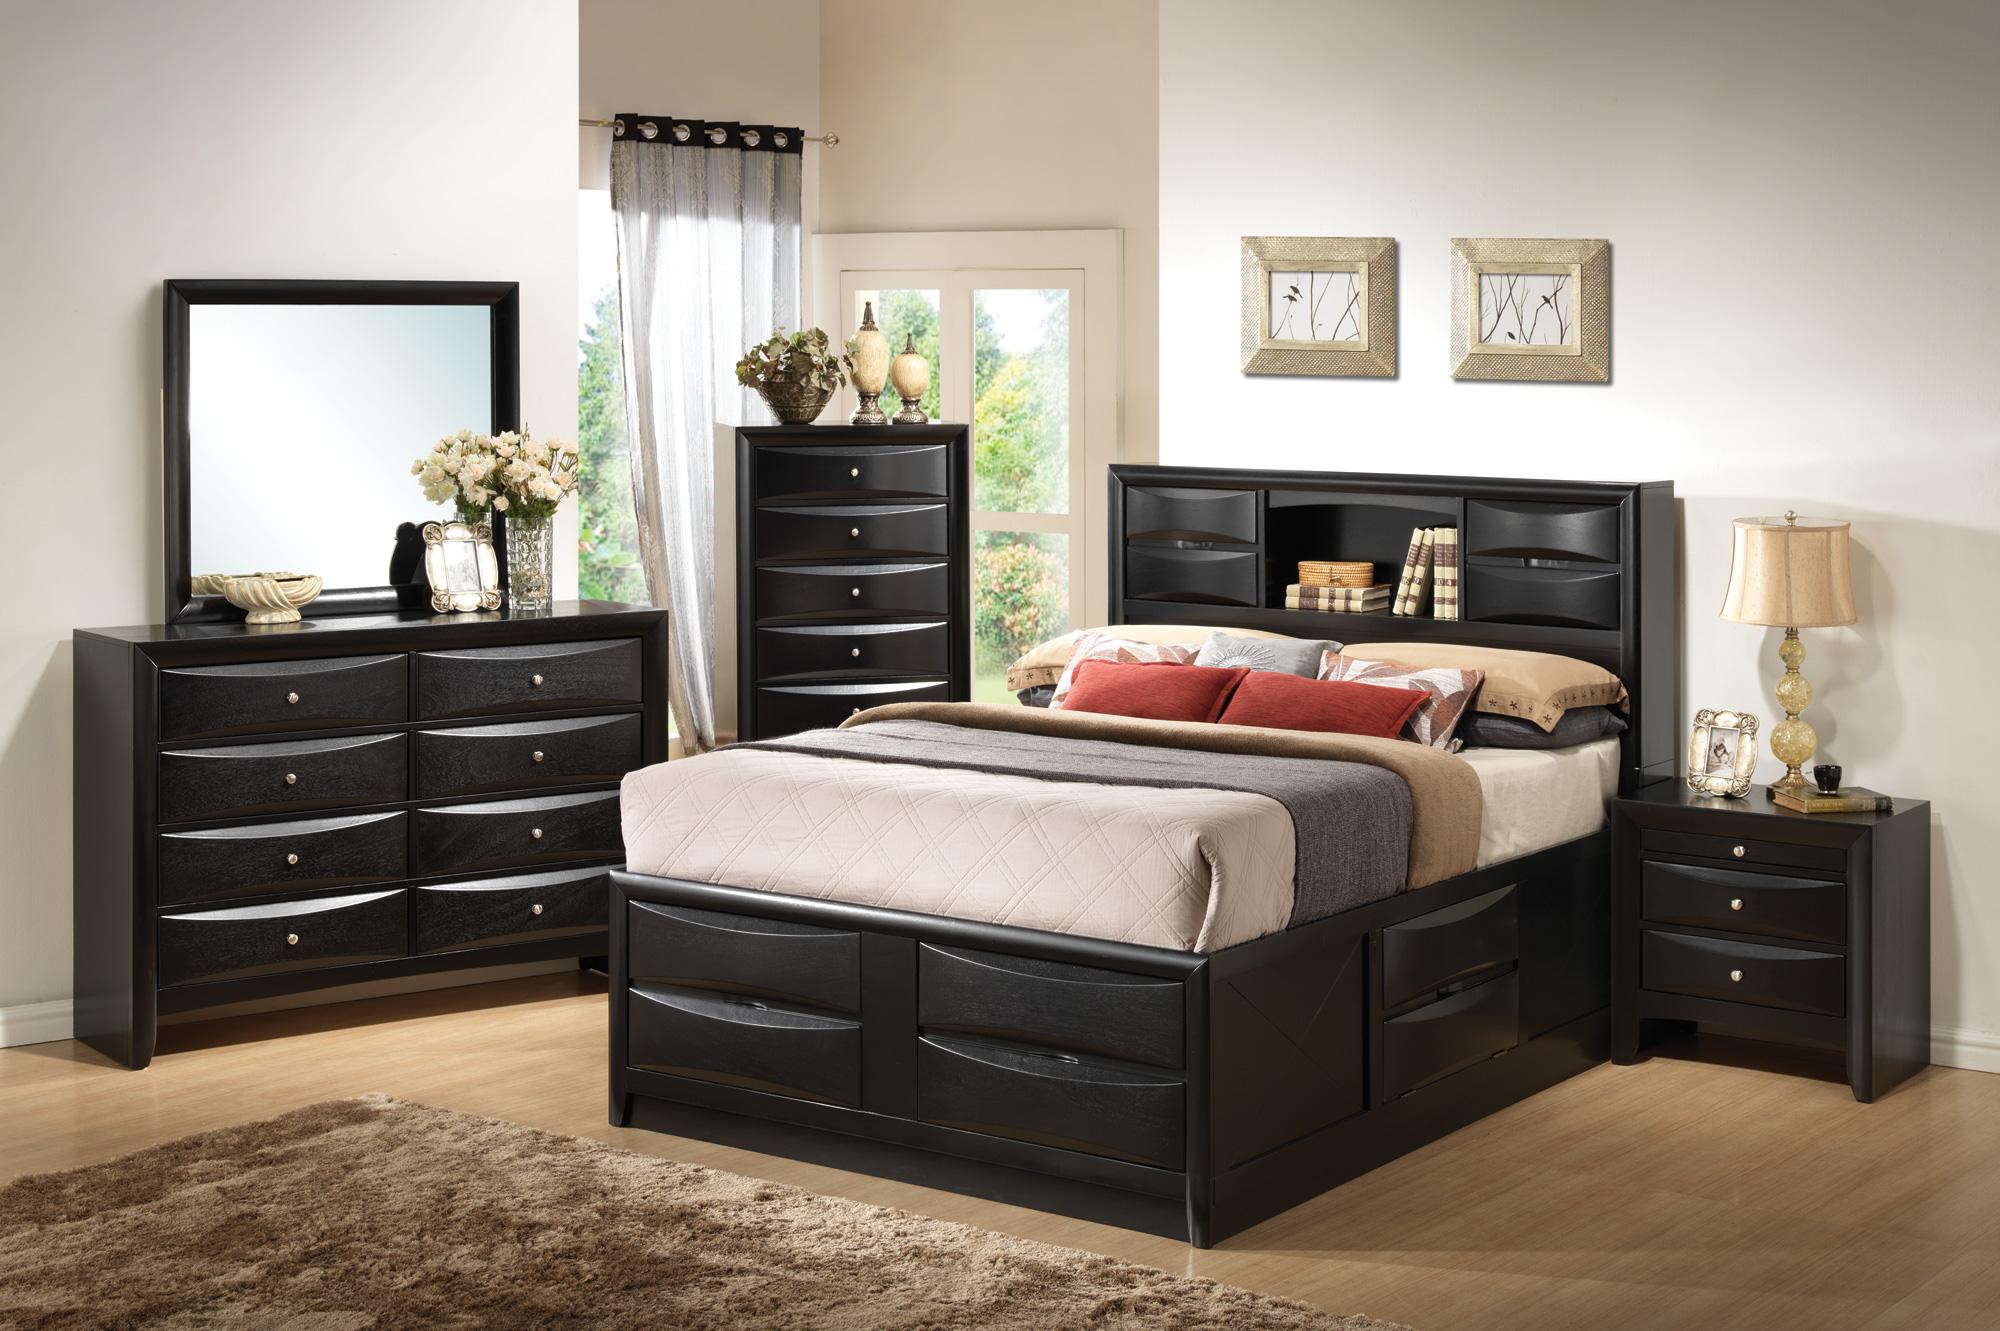 Remarkable Coaster Briana Queen 5Pc Storage Bedroom Set Download Free Architecture Designs Photstoregrimeyleaguecom